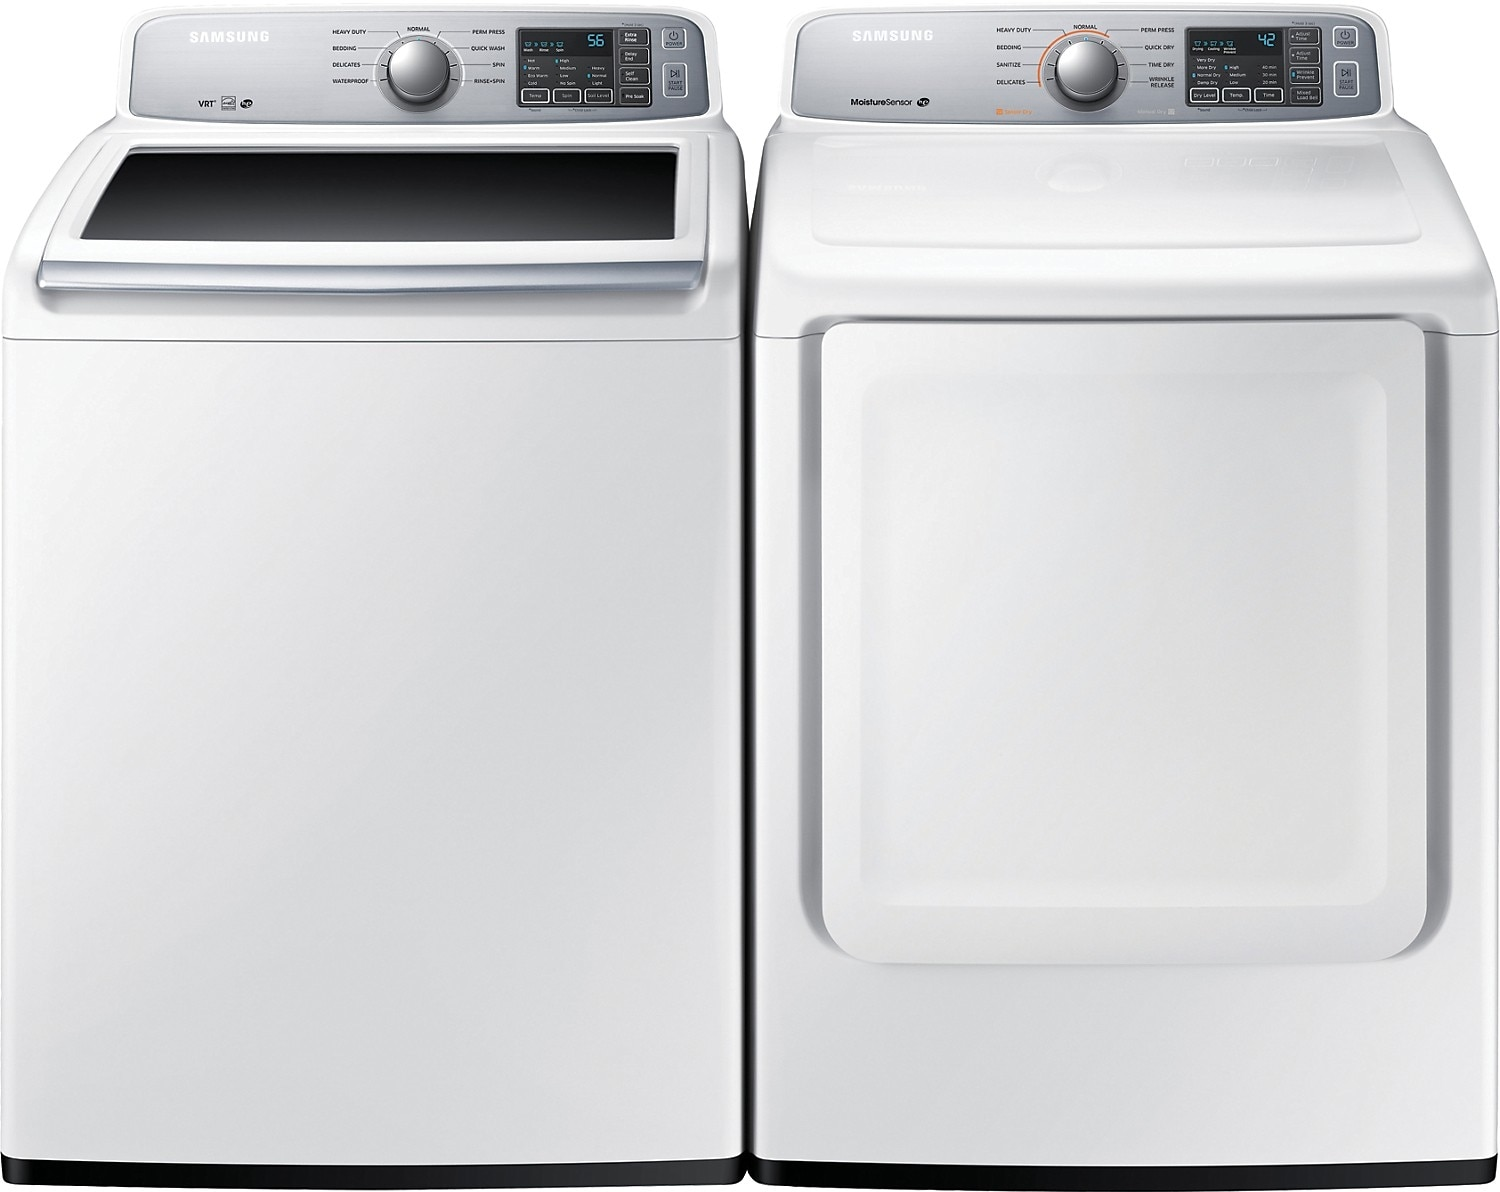 Washing Drying Machine Samsung 52 Cu Ft Top Load Washer And 74 Cu Ft Electric Dryer